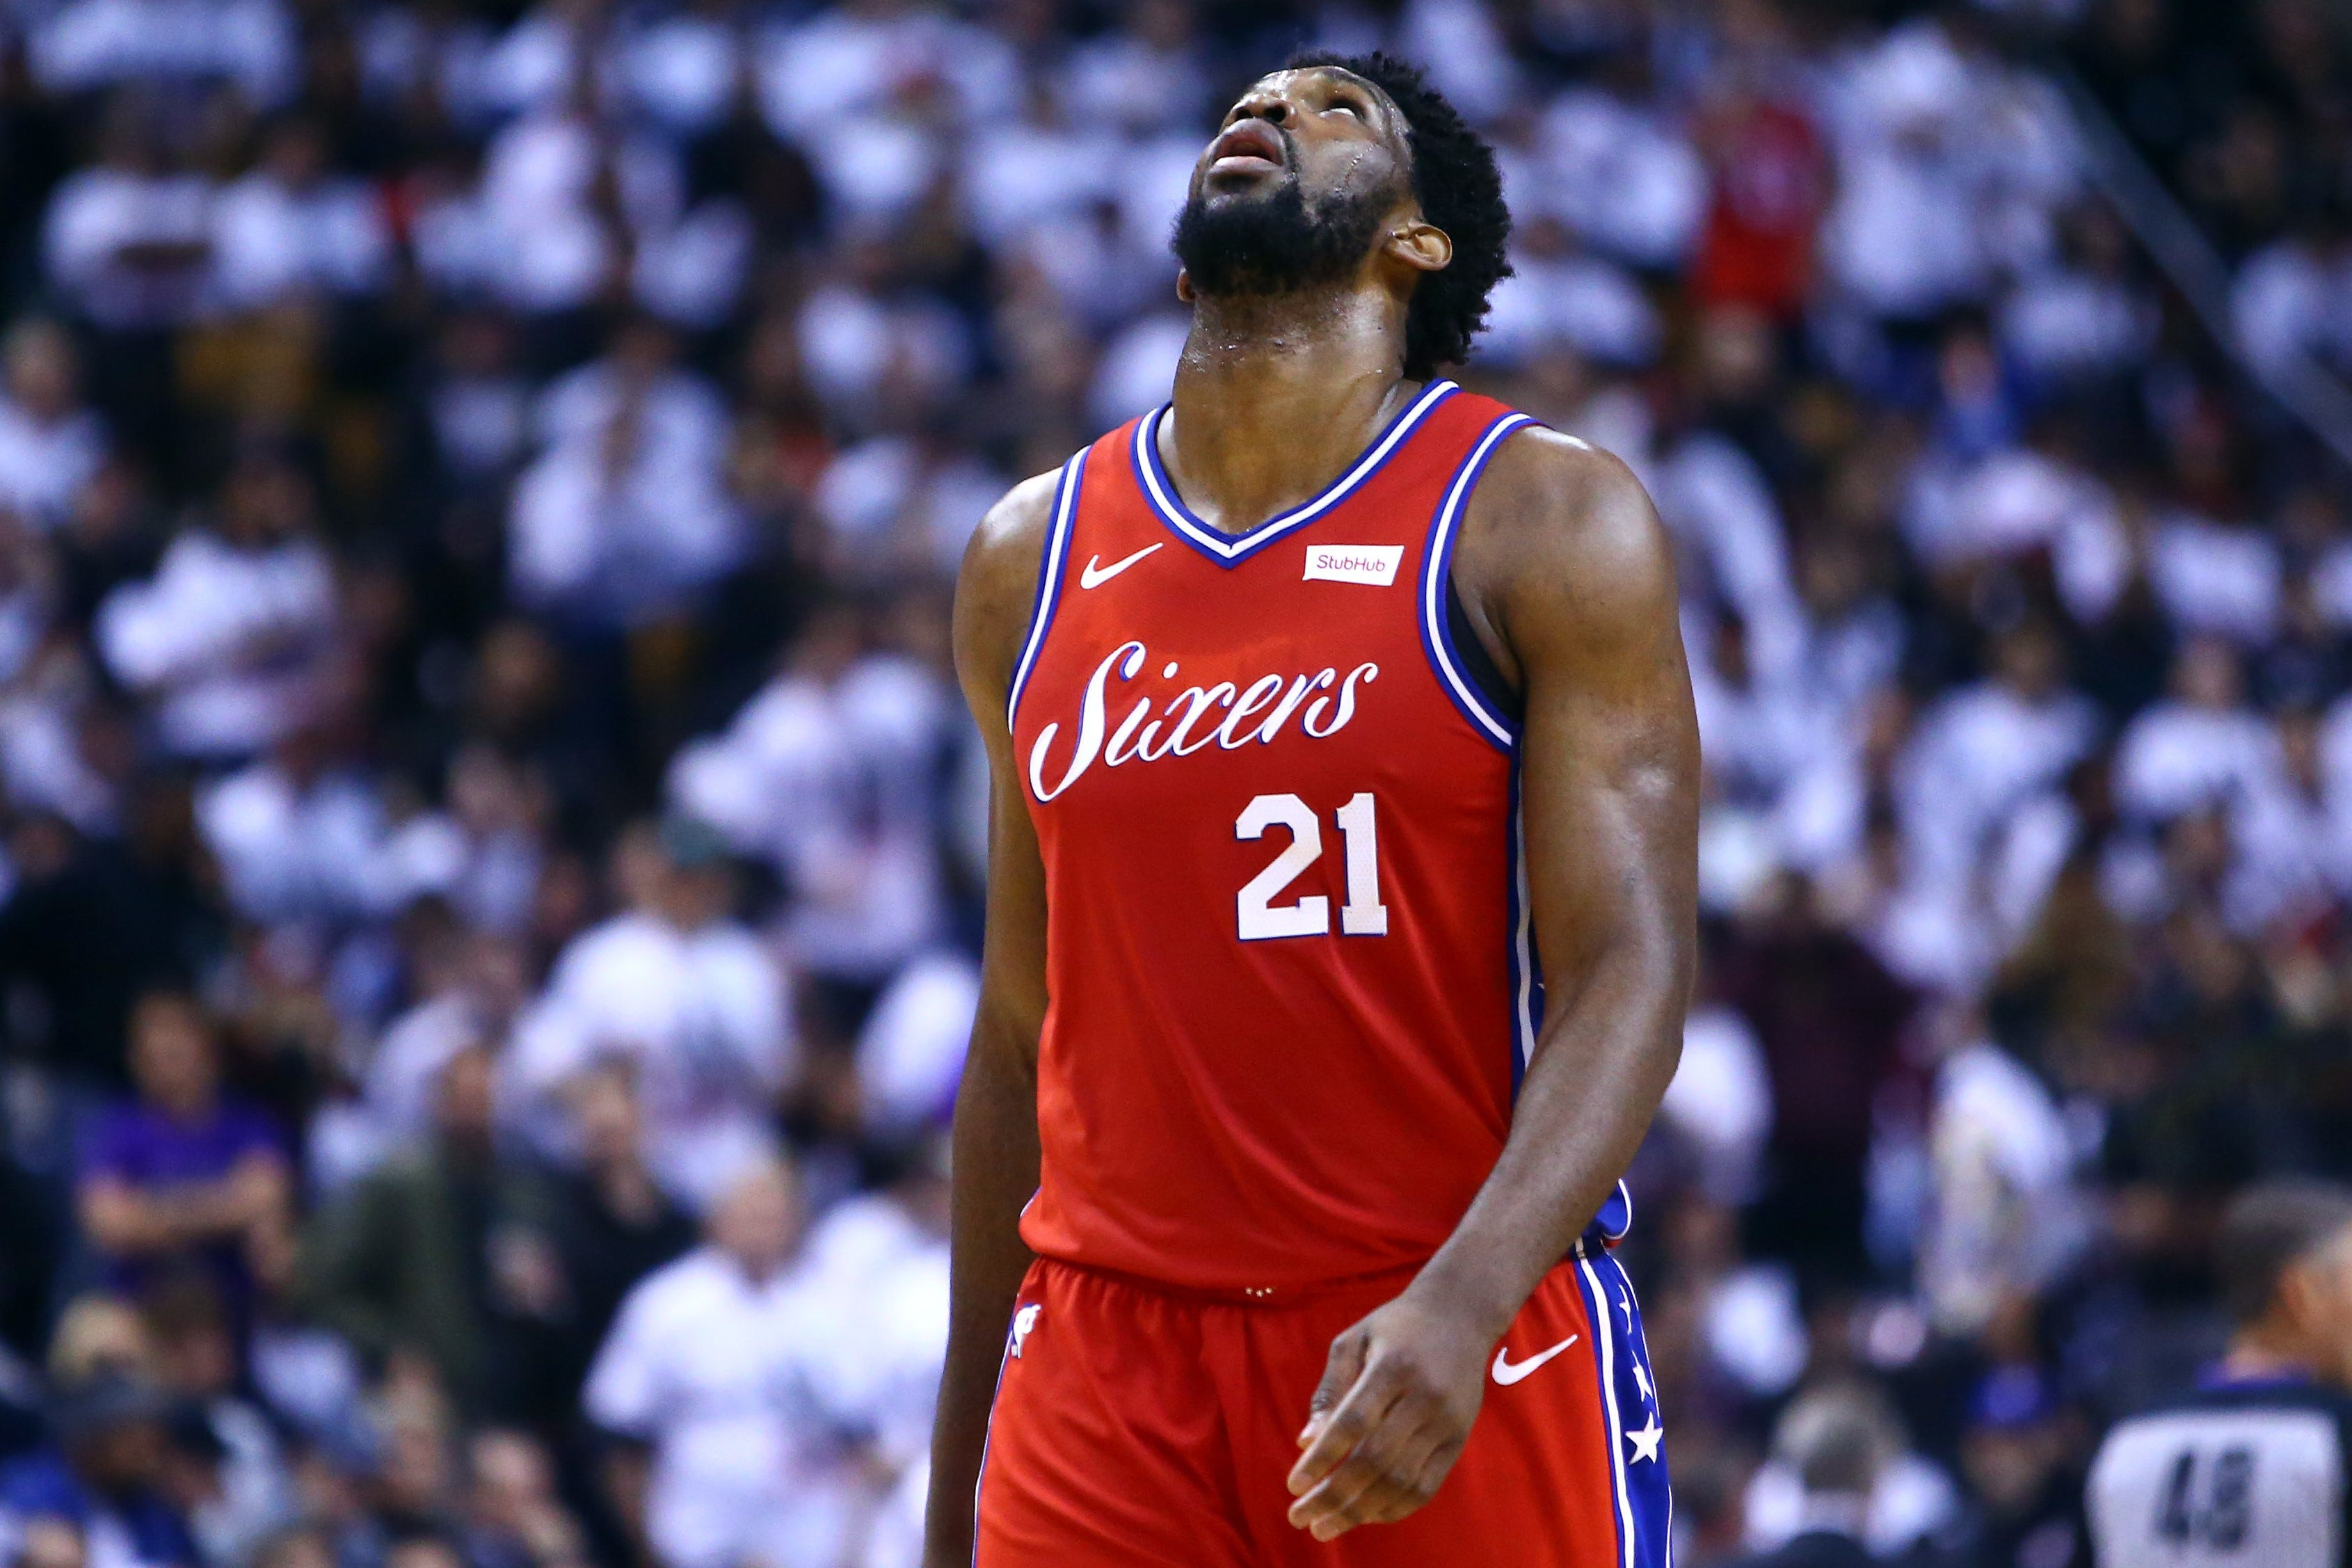 Sixers face major concerns this offseason